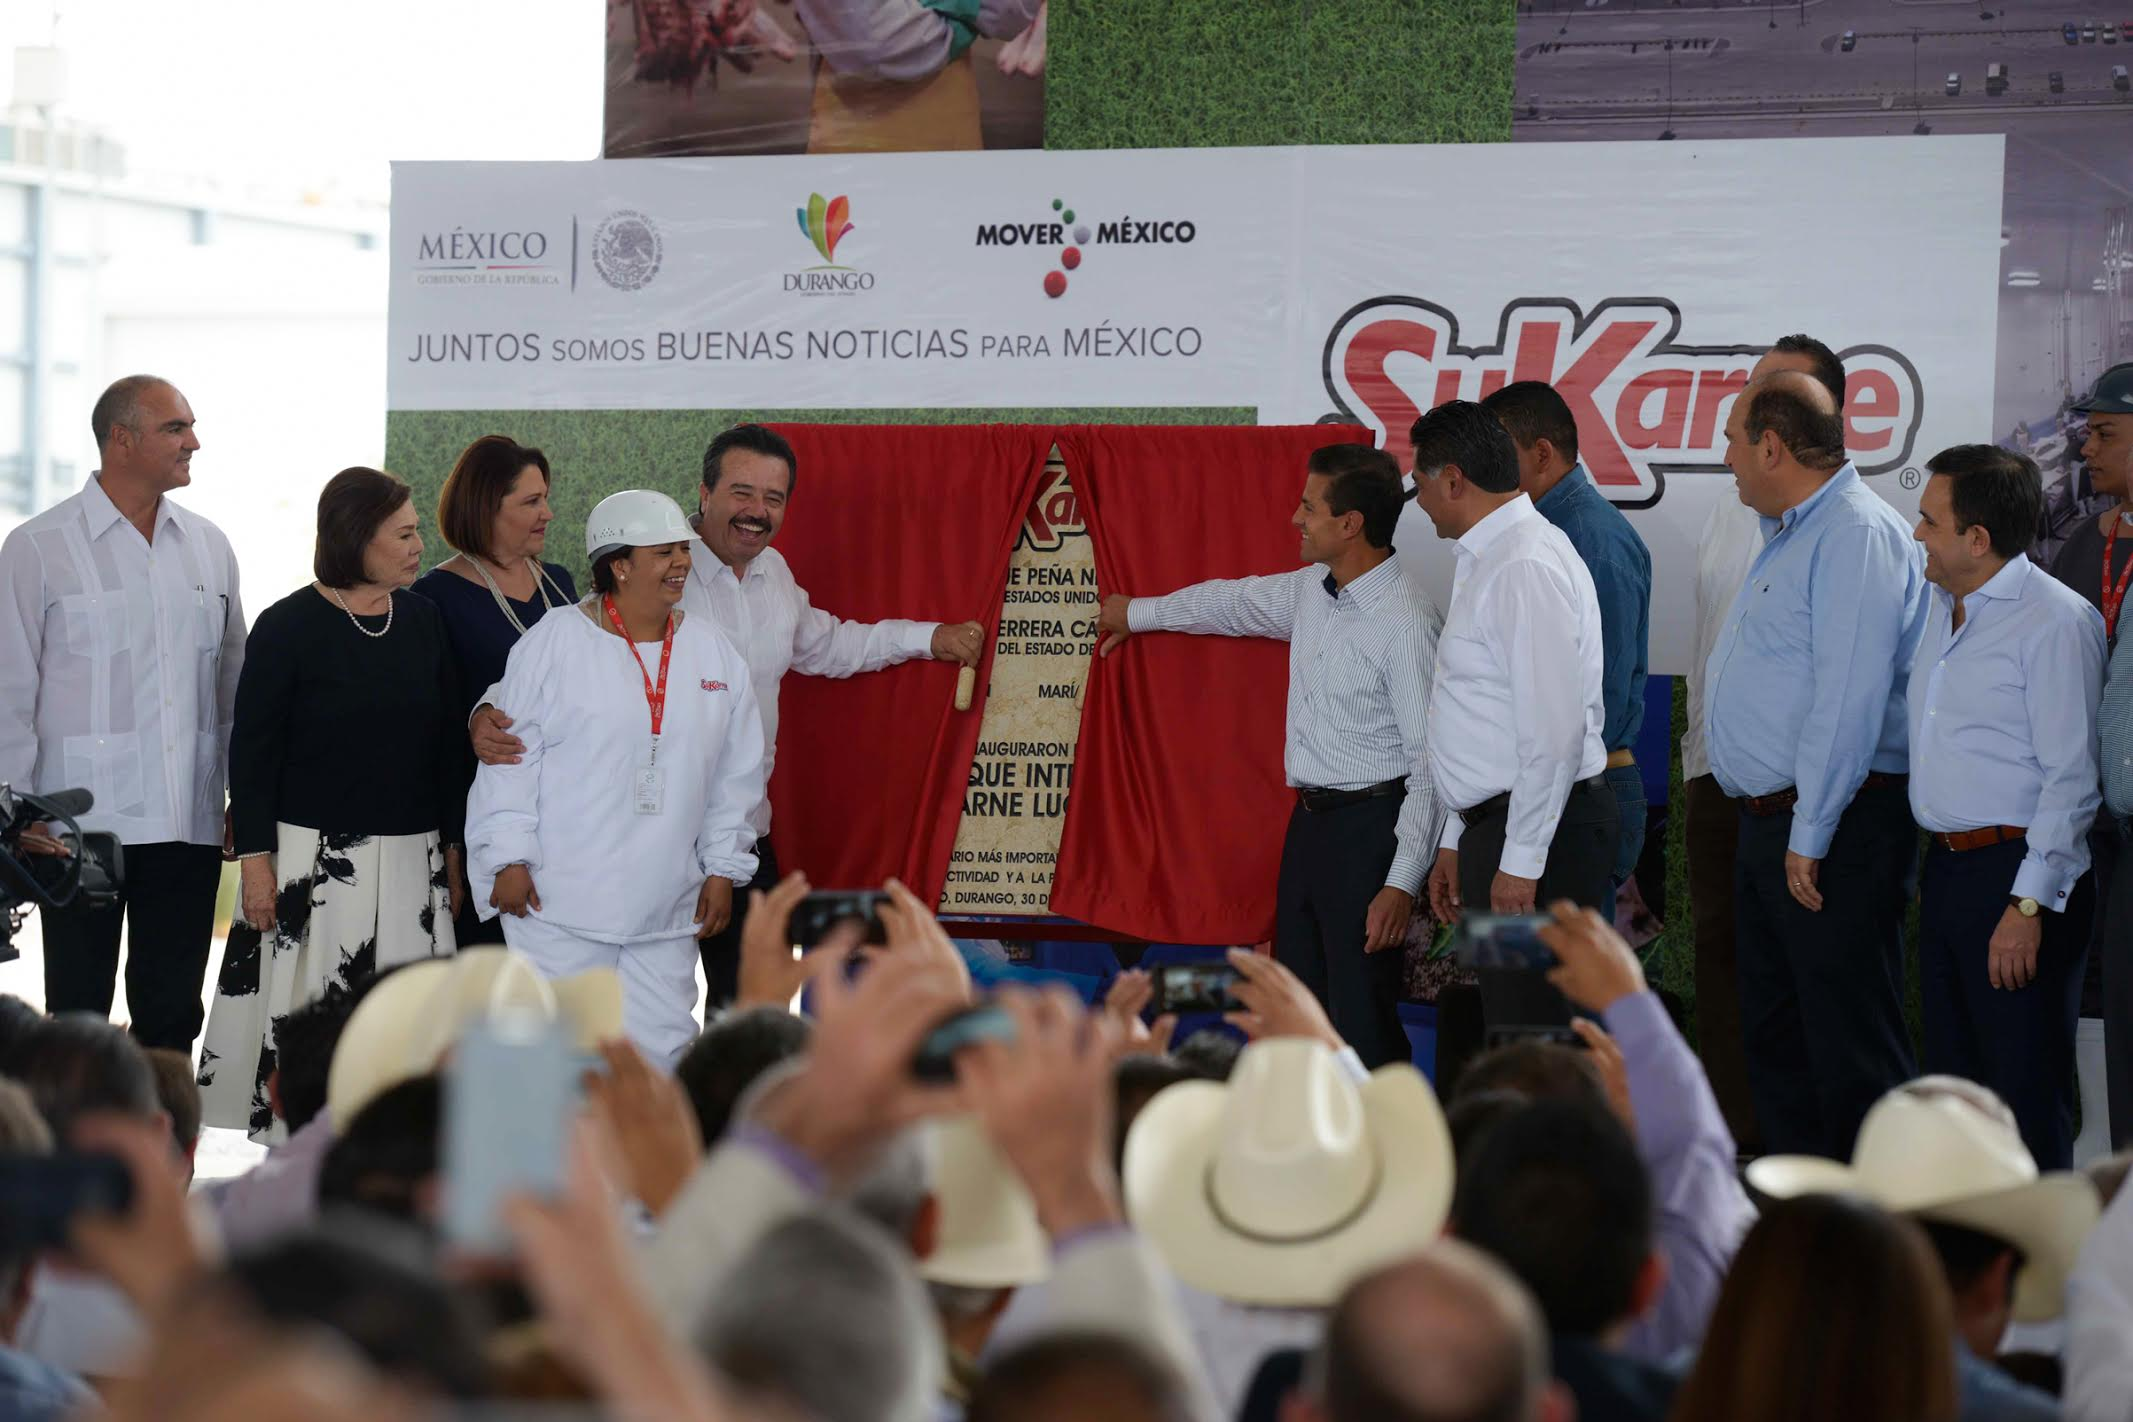 The president inaugurated the Integradora SuKarne Lucero Agropark, which will create 6,000 formal jobs directly in the coming months.